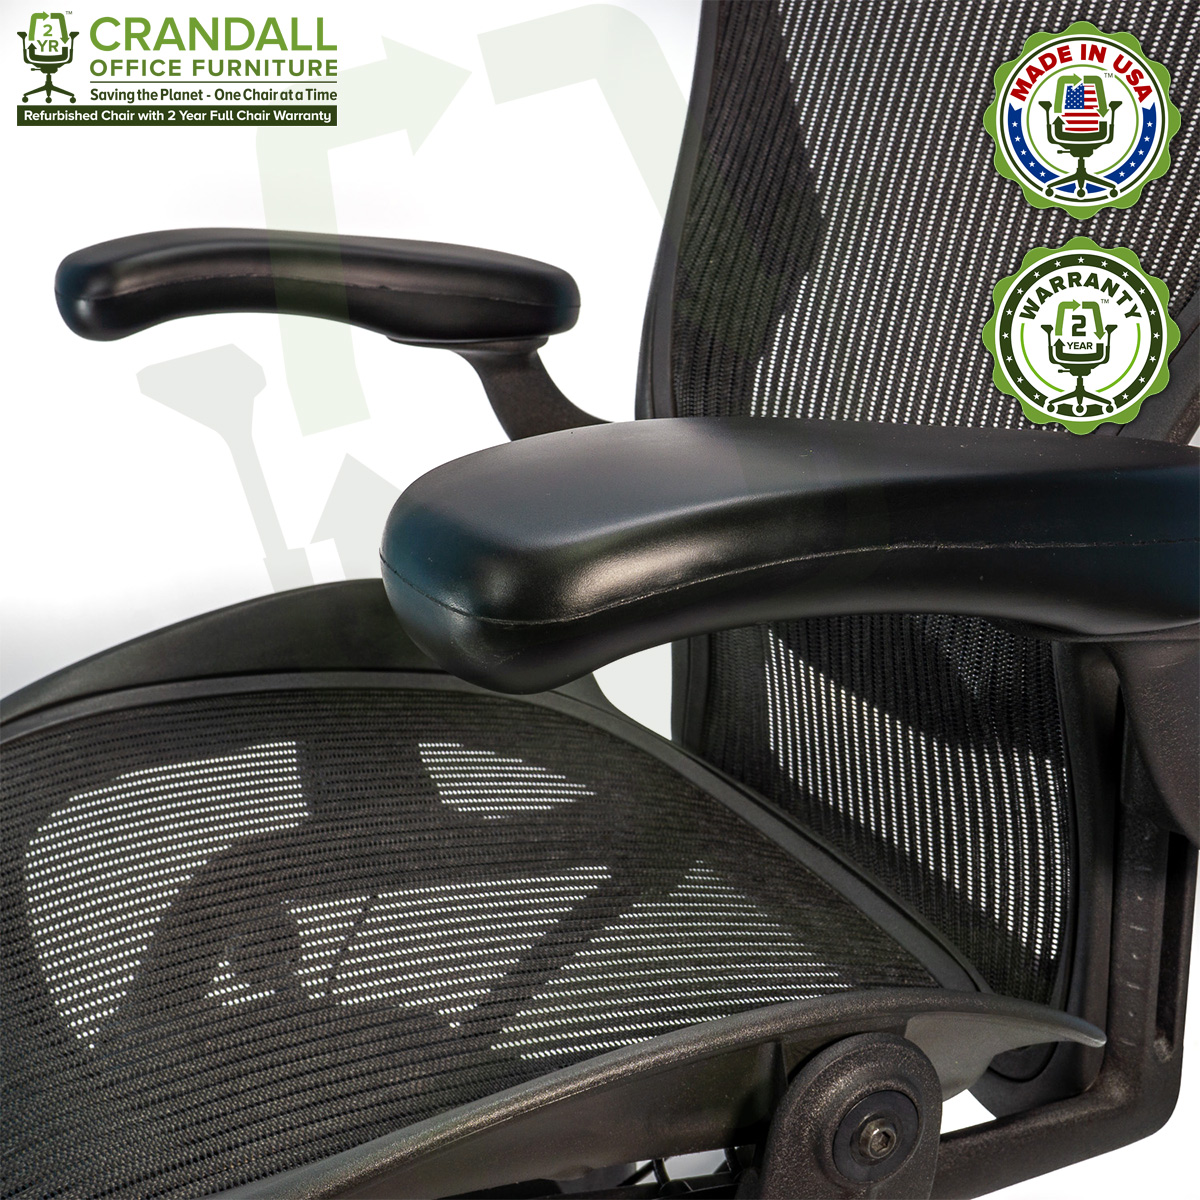 Crandall Office Furniture Refurbished Herman Miller Aeron Chair with 2 Year Warranty - 10